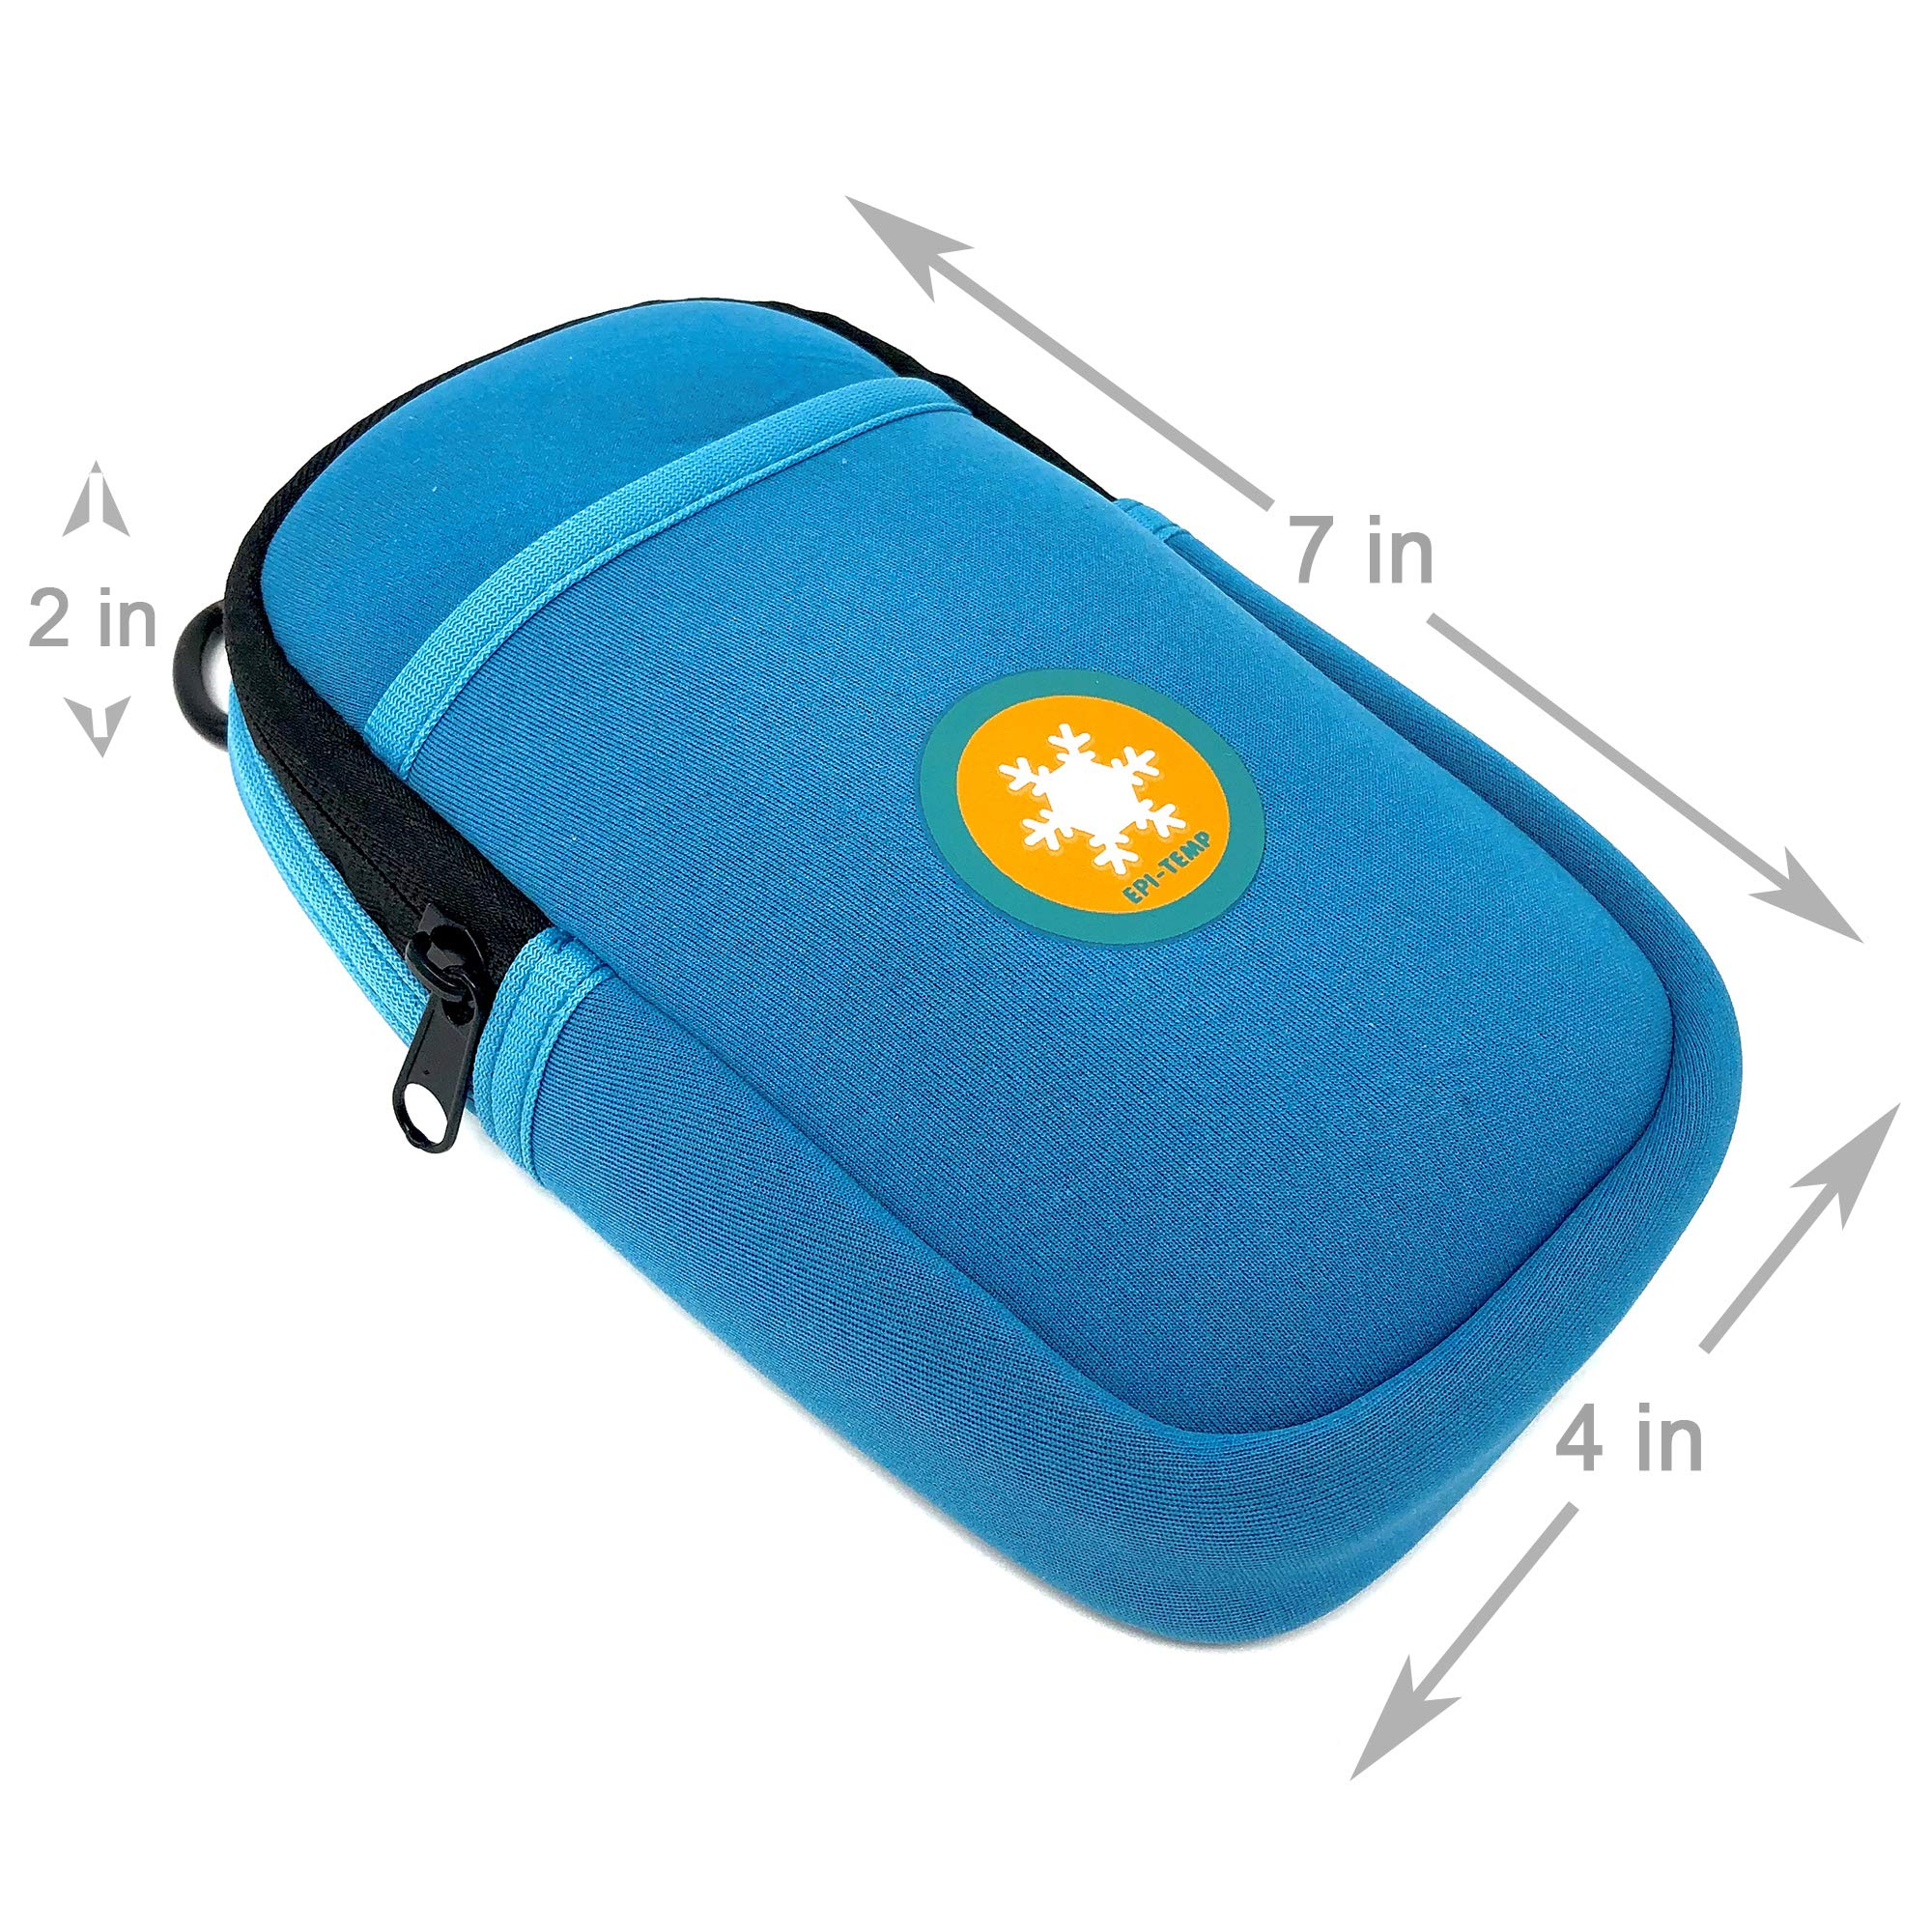 EPI-TEMP Epipen Insulated Case for Kids, Adults - Smart Carrying Pouch, Storage Bag, Powered by PureTemp Phase Change Material to Keep Epinephrine in Safe Temperature Range (Teal) by EPI-TEMP (Image #4)